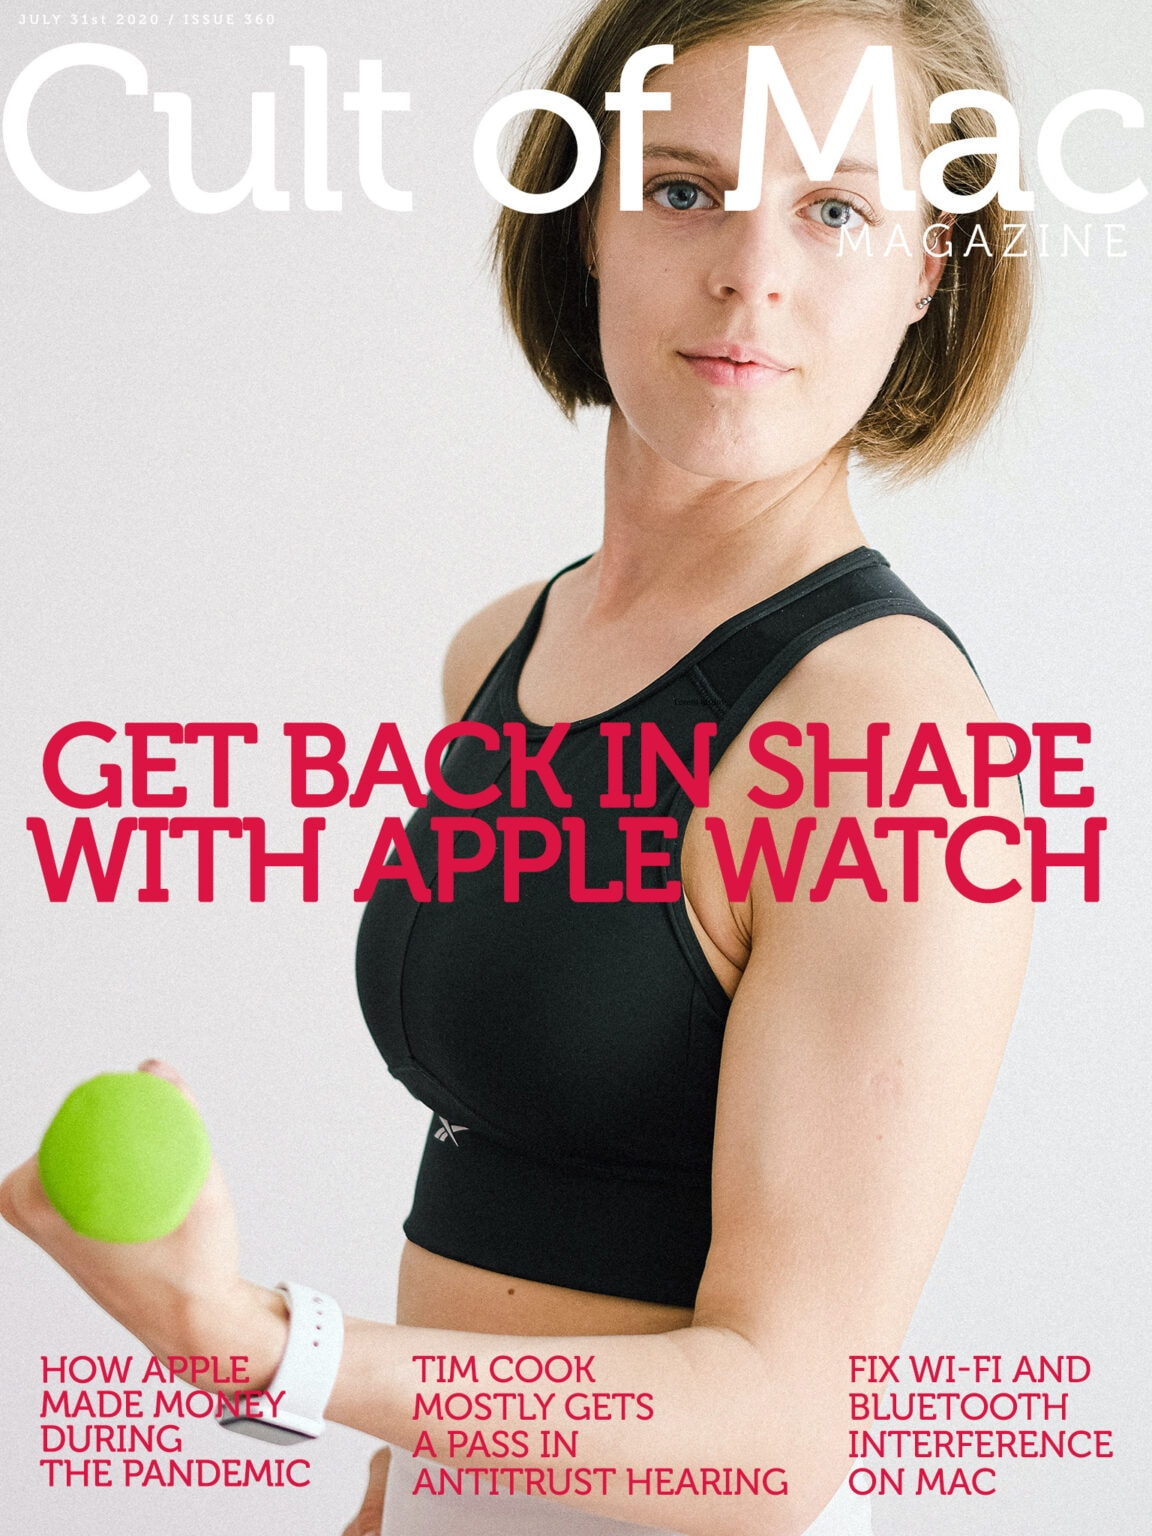 Time to get back in the game! Here's how to get back in shape with Apple Watch.